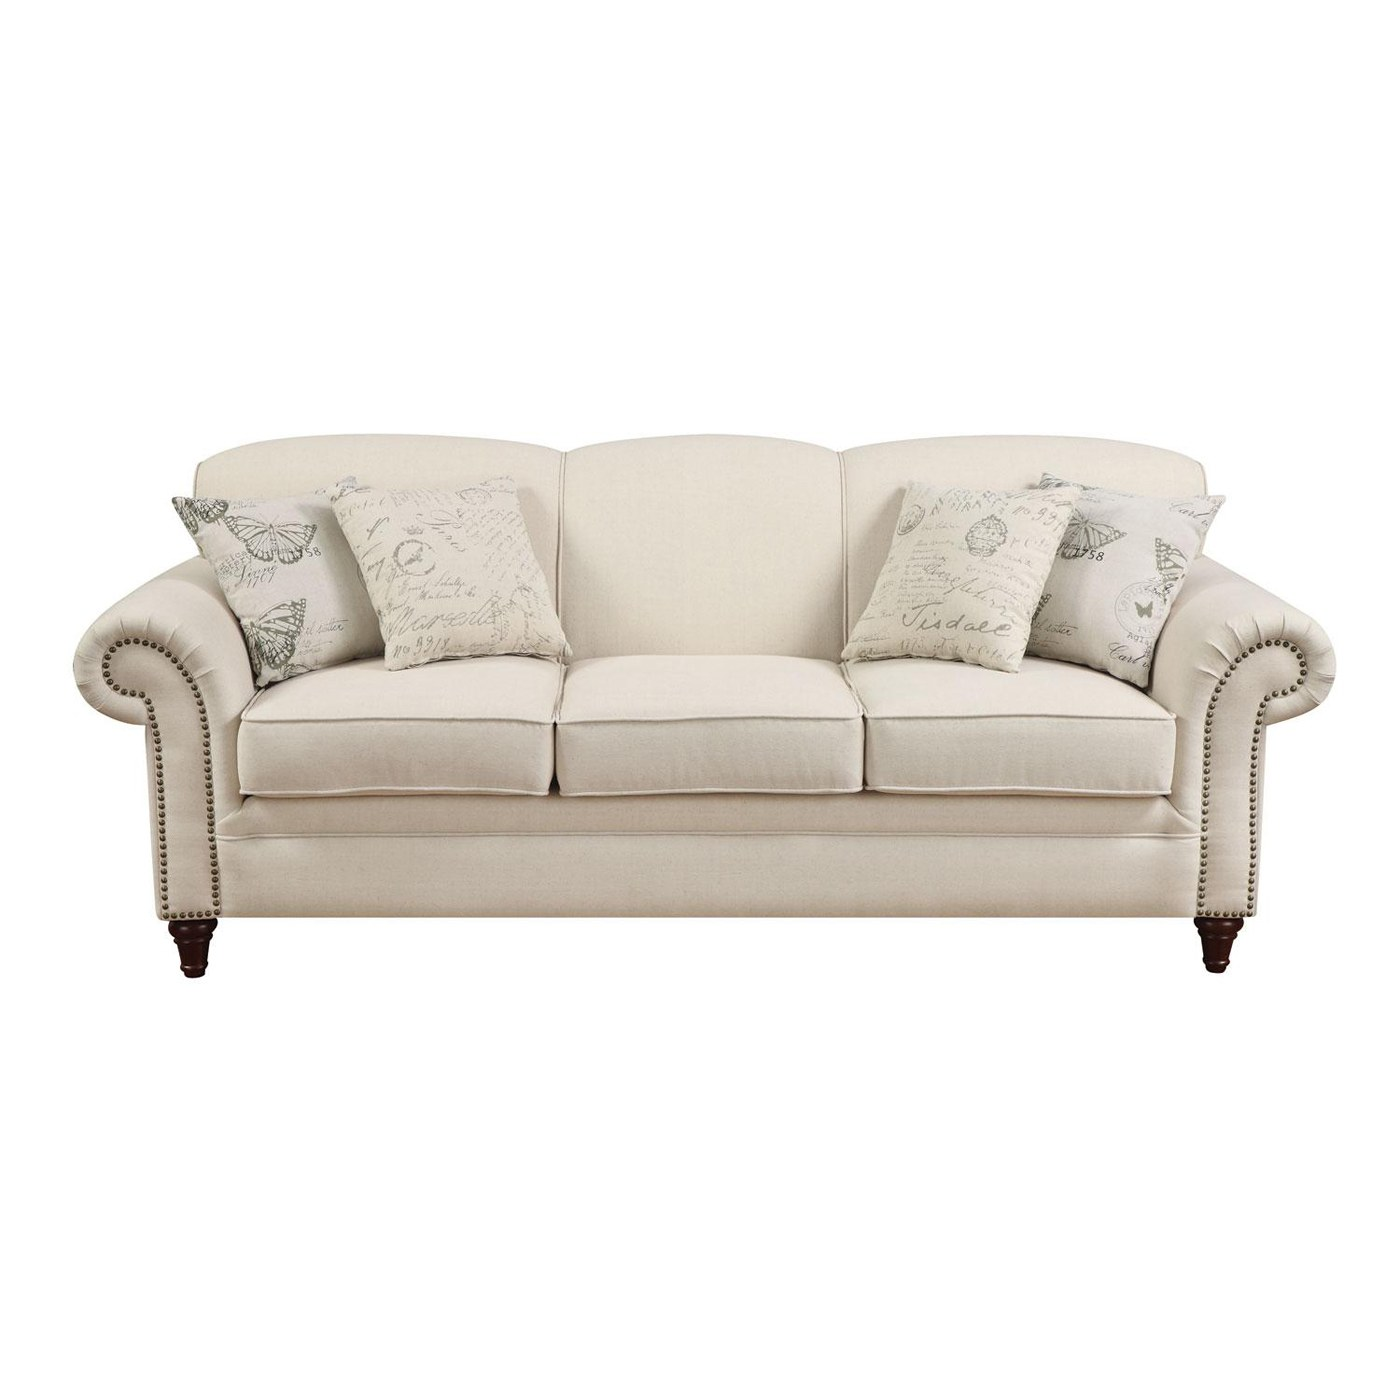 Norah sofa by coaster fine furniture for Fine furniture